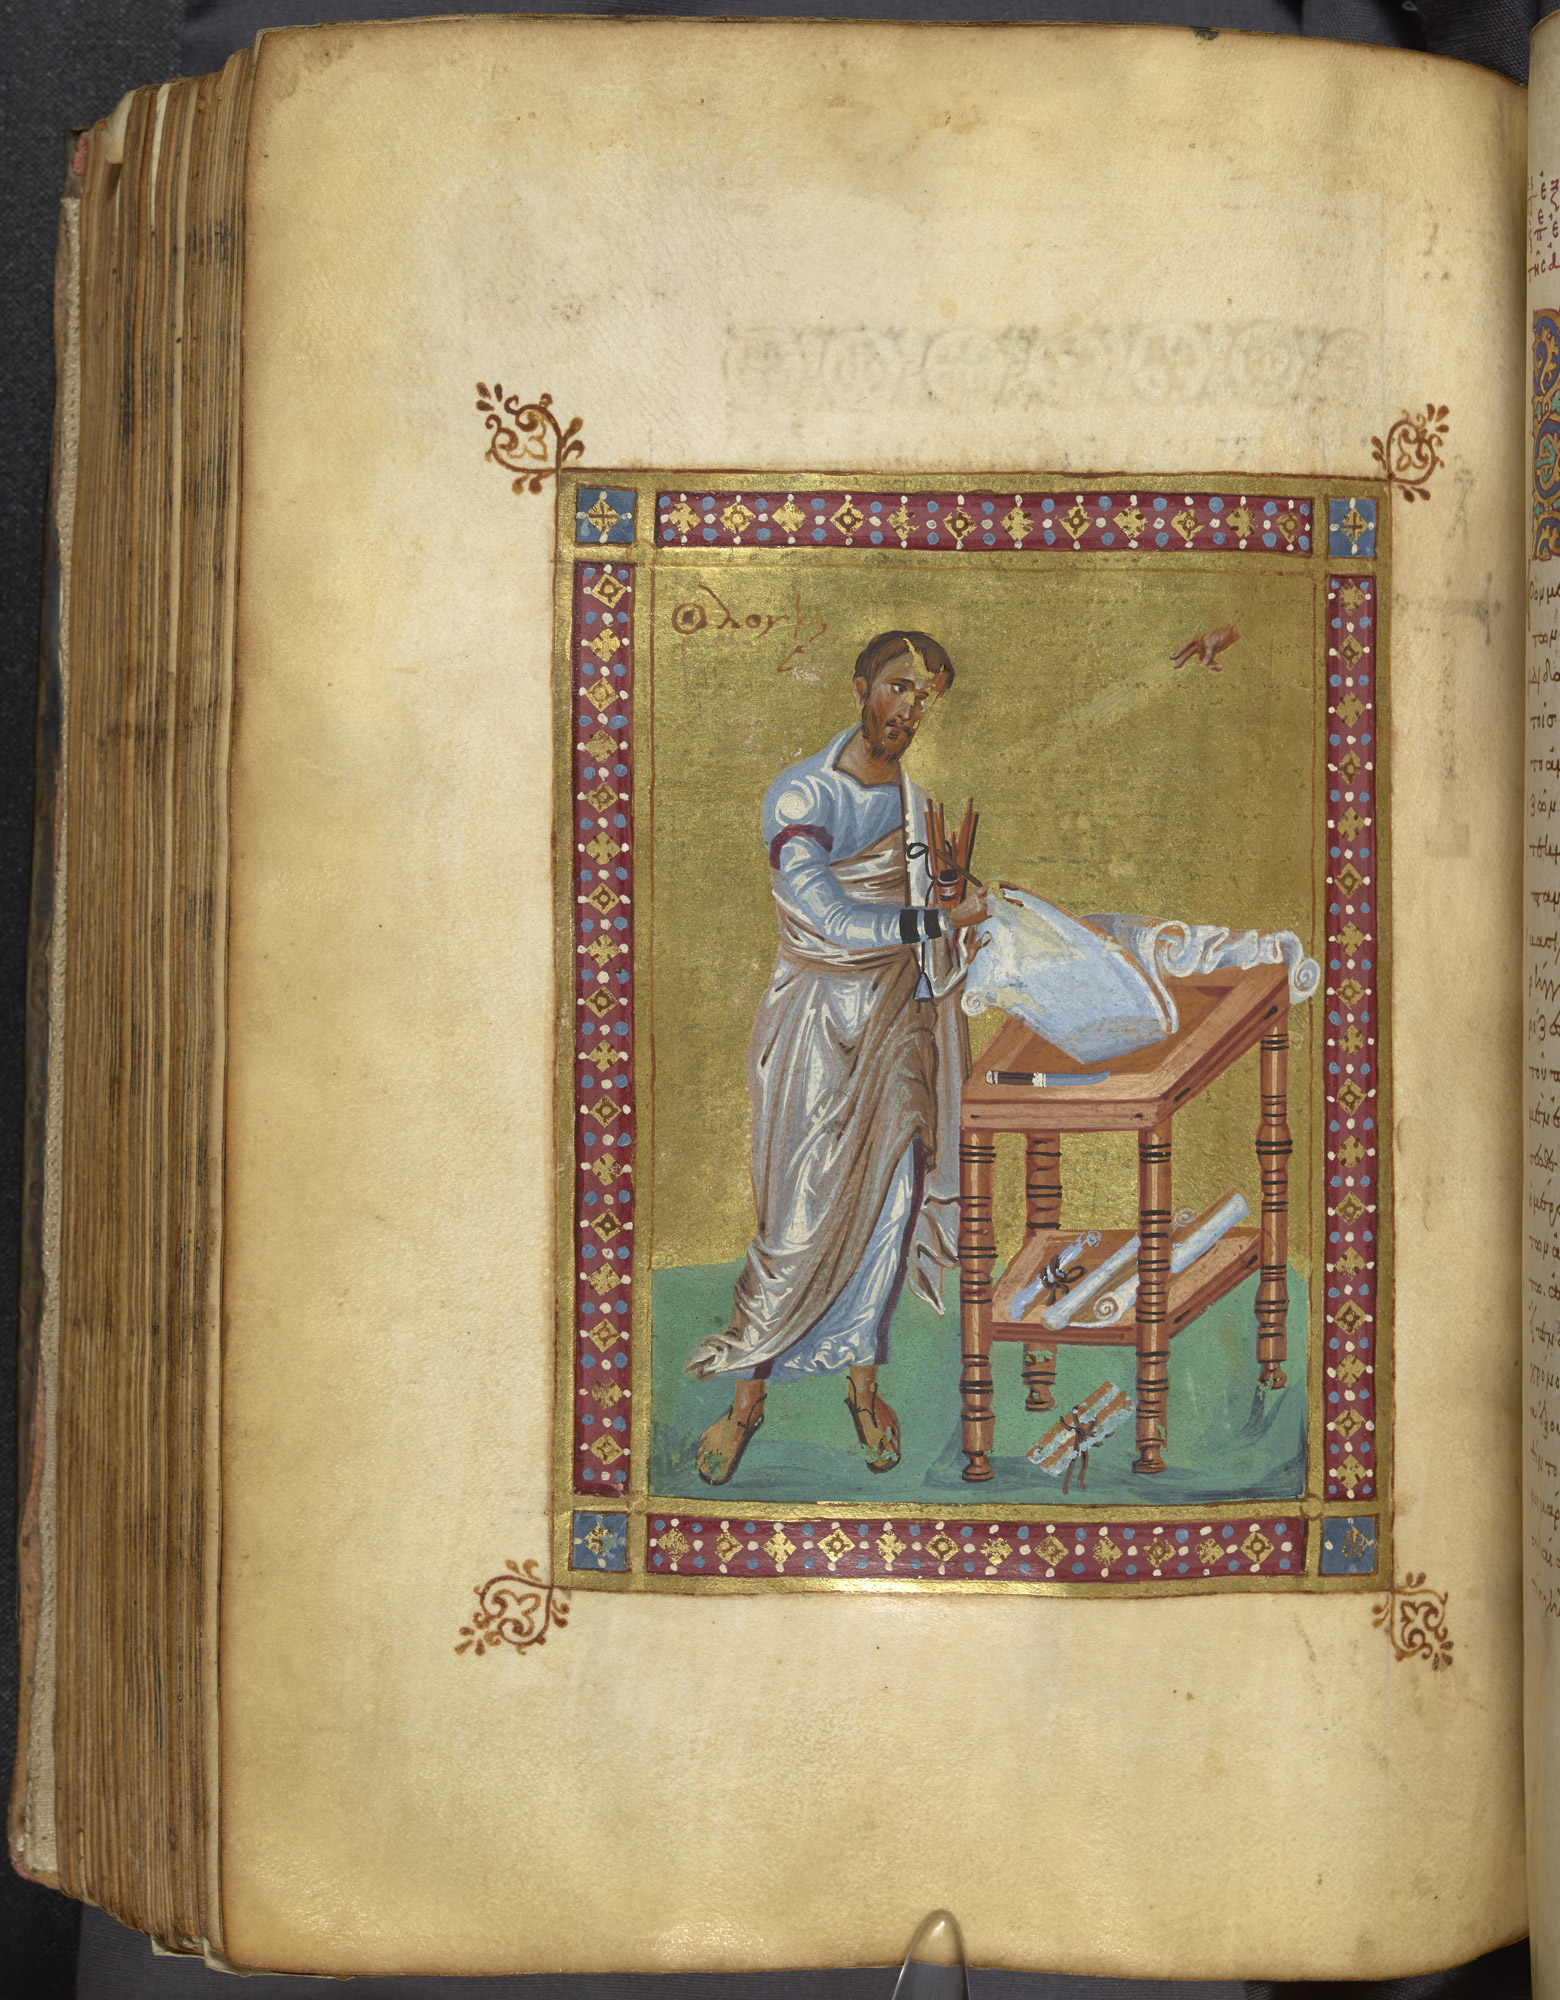 The Guest-Coutts New Testament (Add MS 28815 f162v)